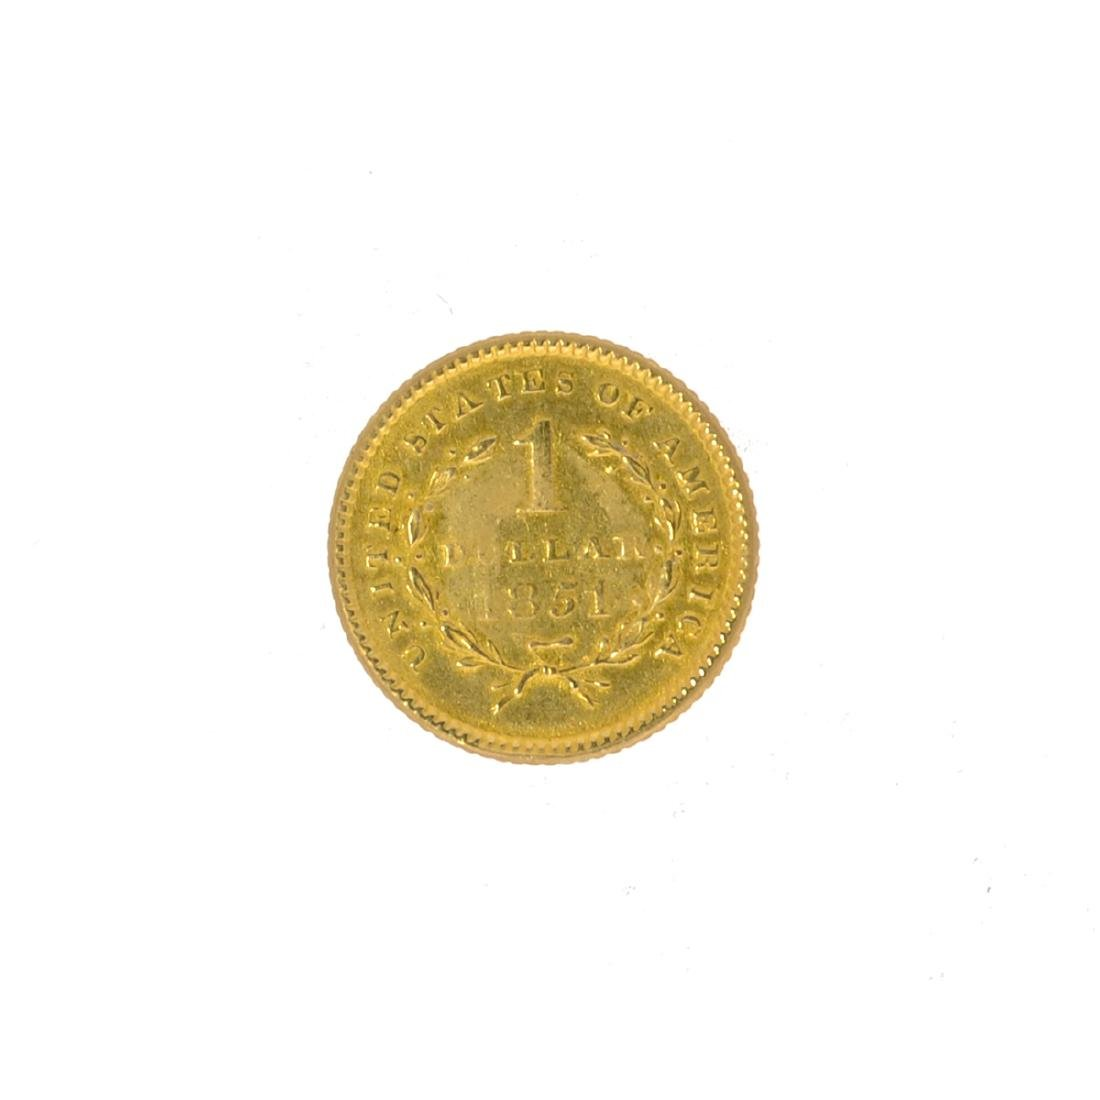 *1851 $1 U.S. Liberty Head Gold Coin (JG N) - 2